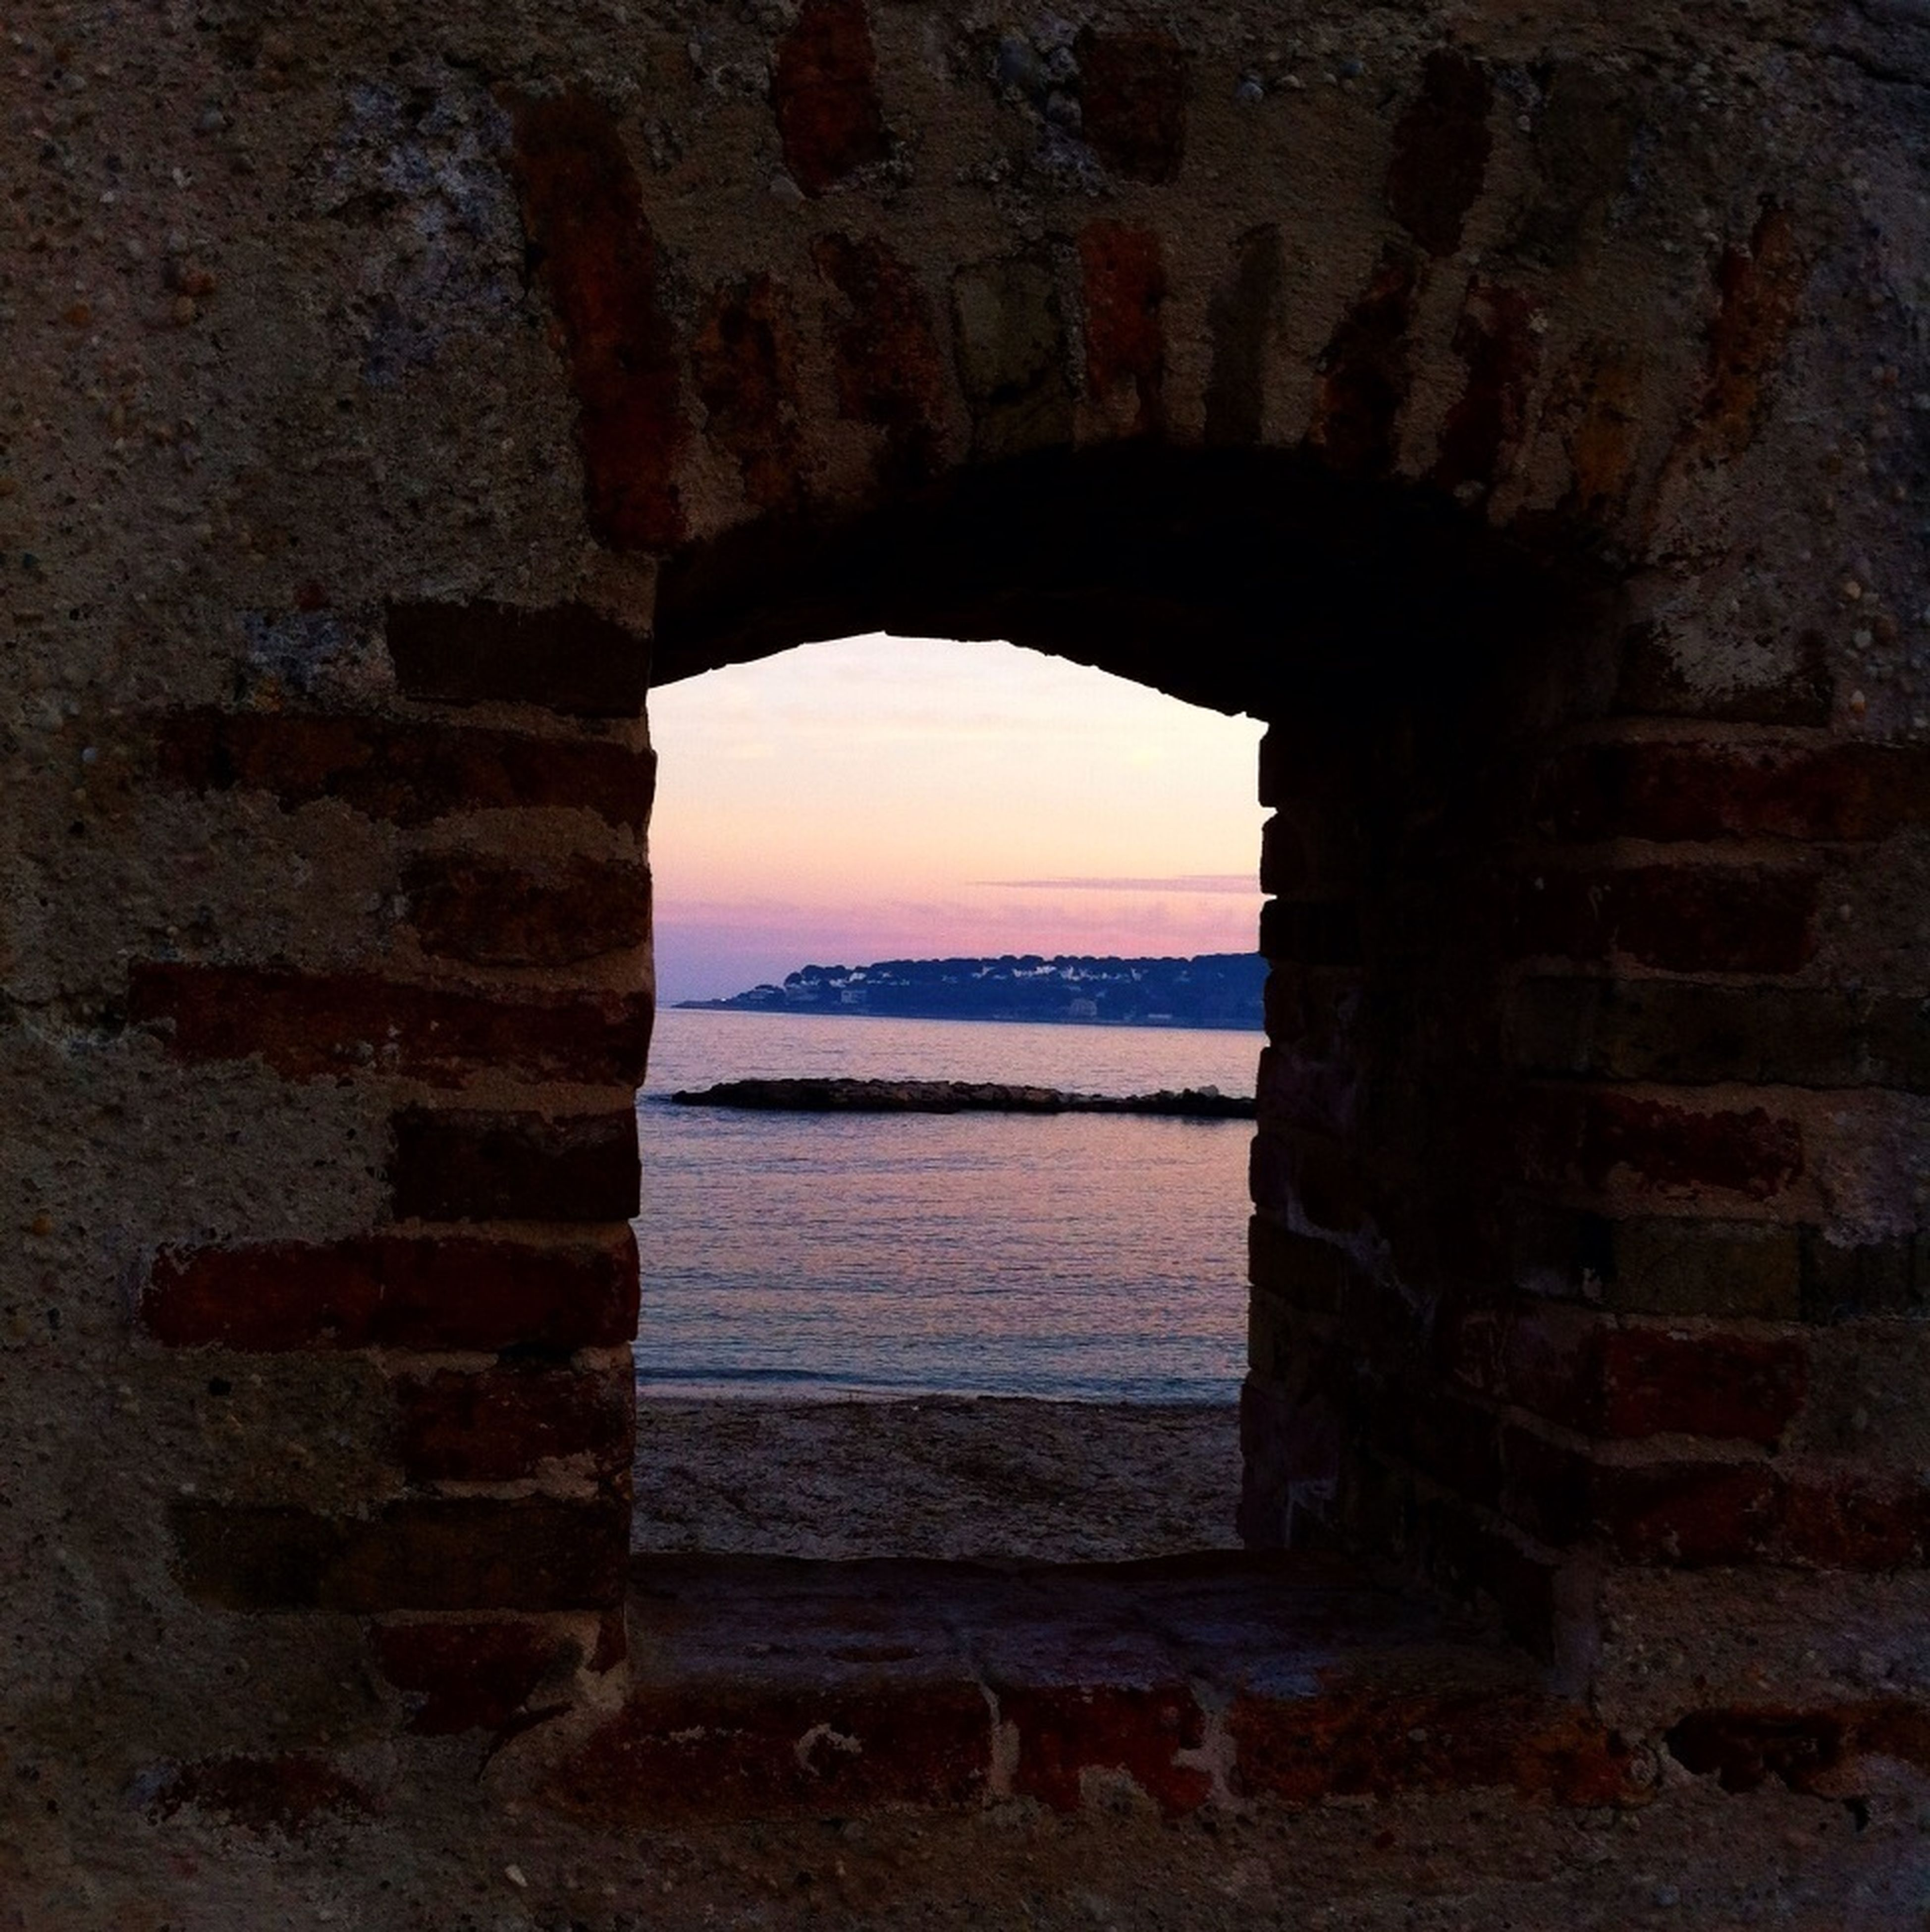 sea, built structure, water, architecture, arch, horizon over water, sky, tranquility, indoors, old, sunset, beach, nature, rock - object, scenics, weathered, stone wall, abandoned, tranquil scene, no people